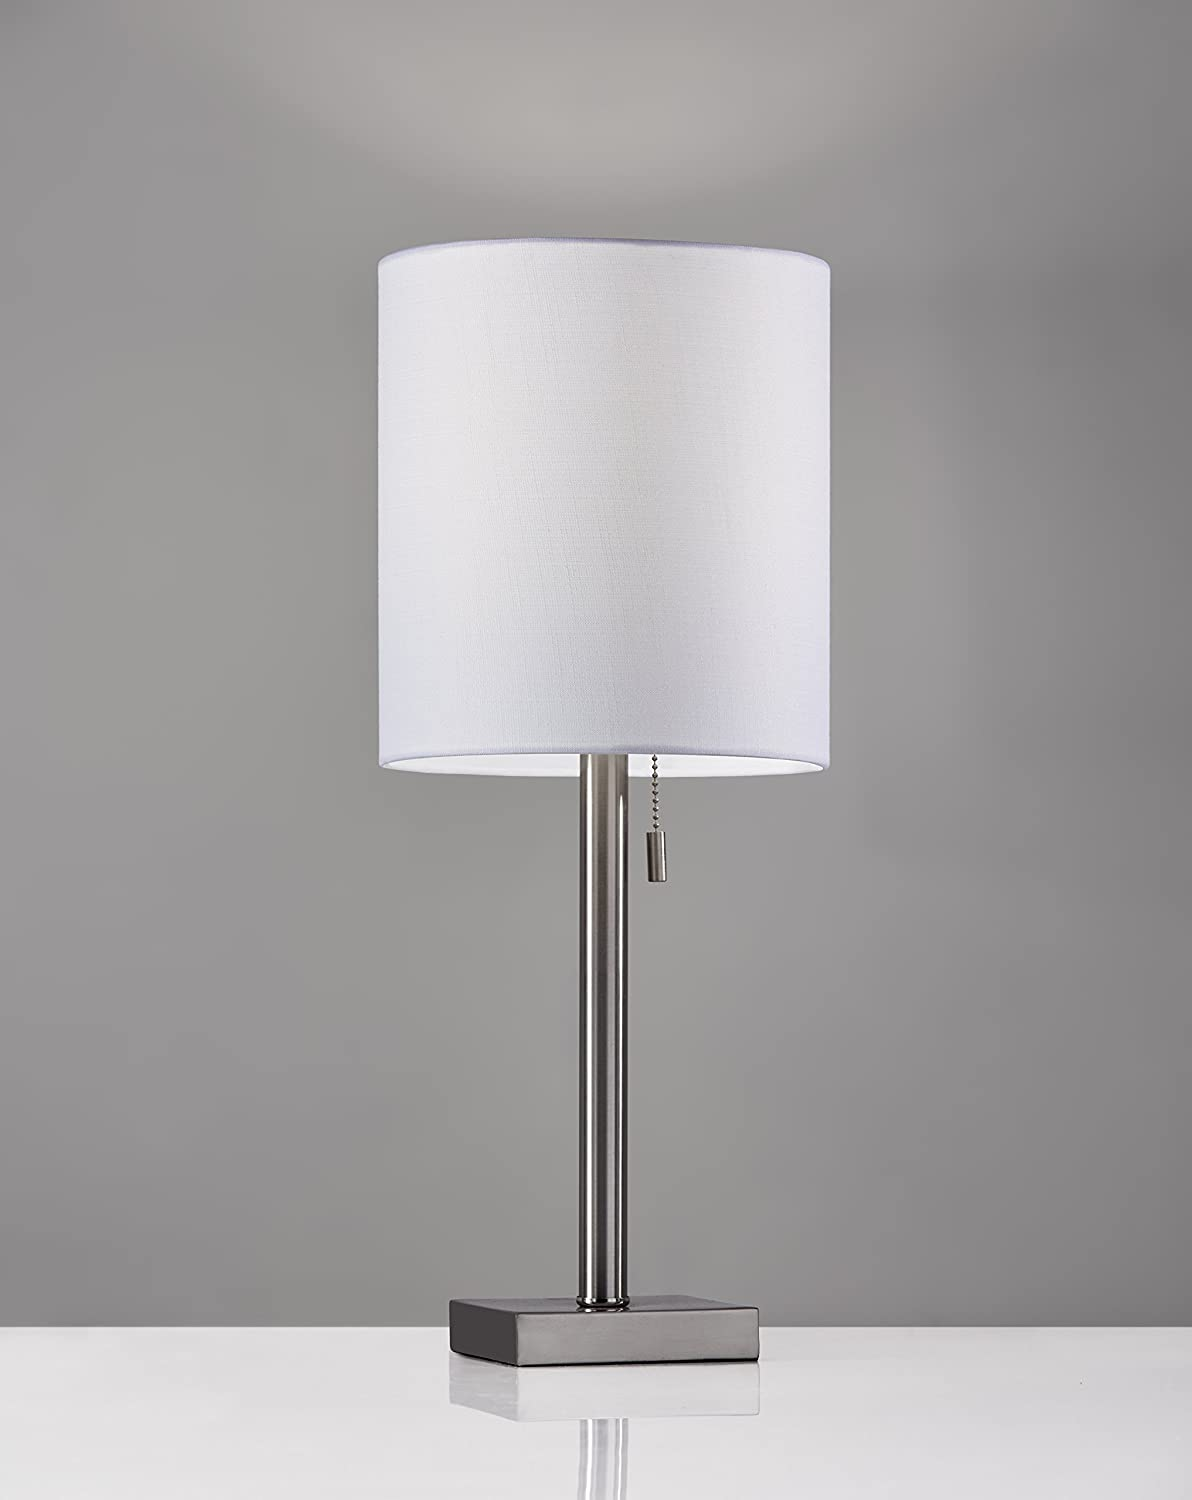 Adesso 1546 22 Liam Table Lamp, Brushed Steel